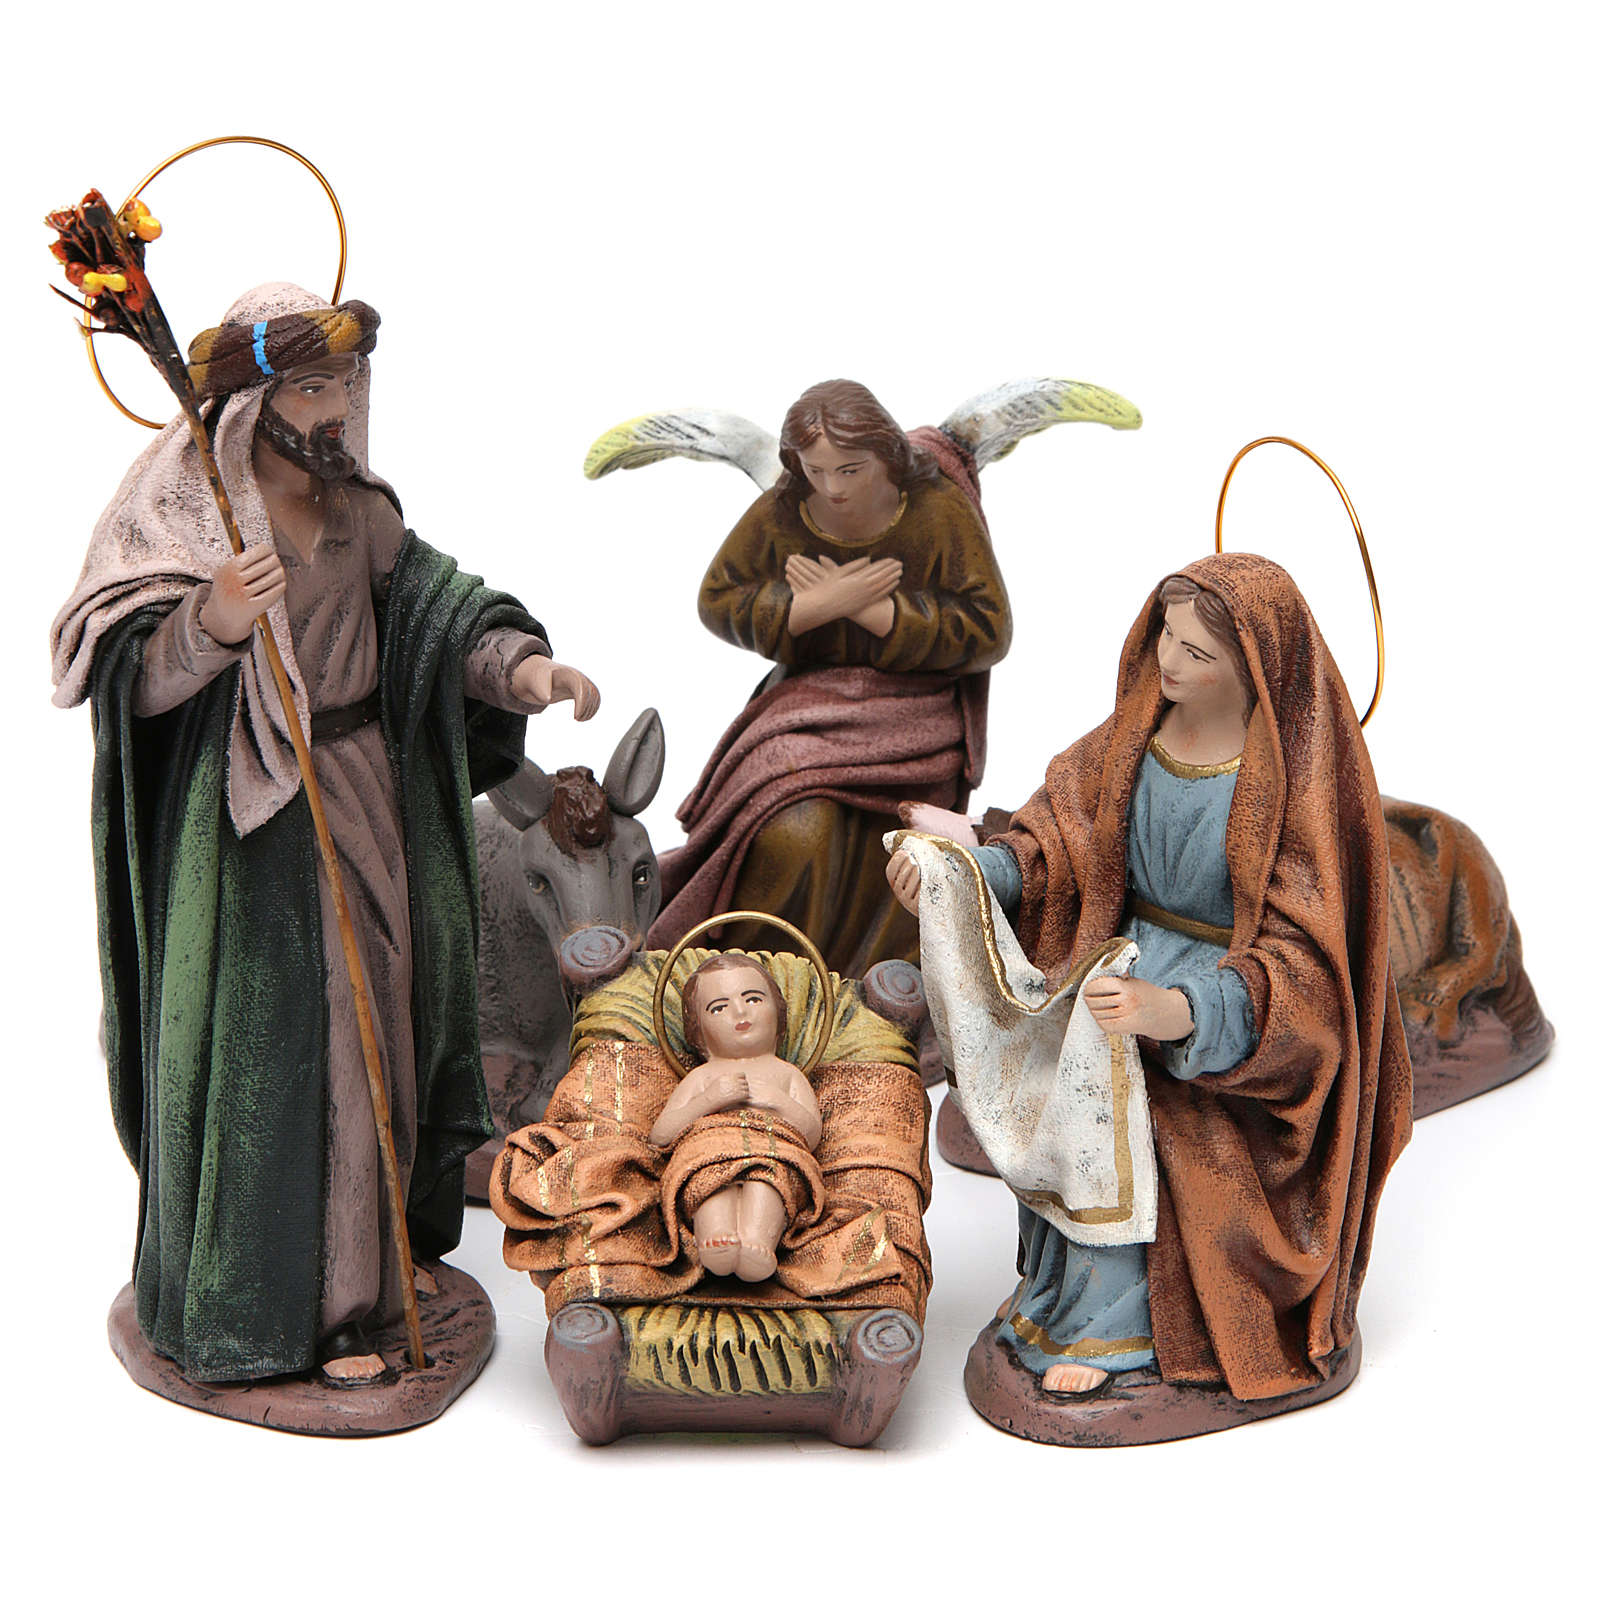 Birth of Jesus with Mary holding drape 6 pieces in terracotta for Nativity Scene 14 cm 3